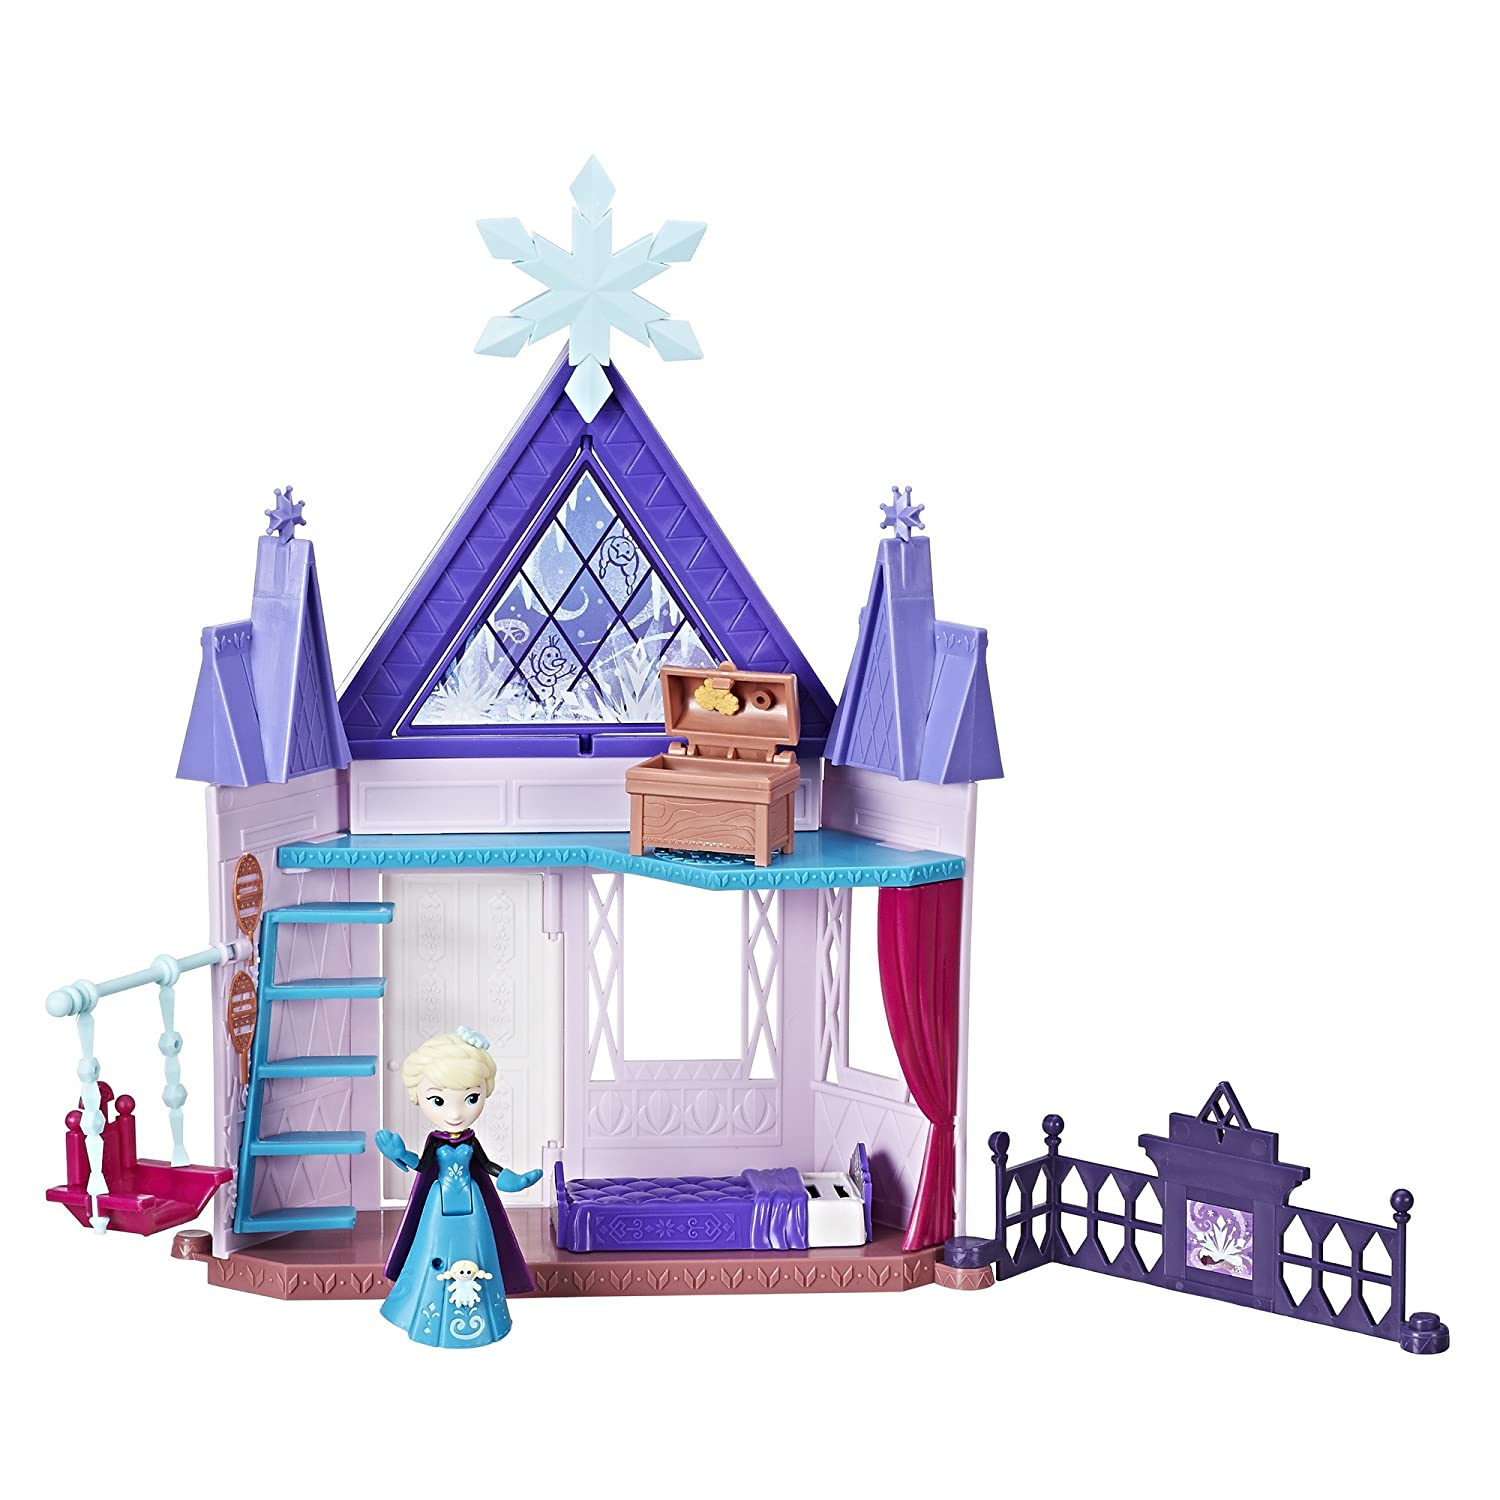 Disney Frozen Royal Chambers Playset Dolls and Accessories Hasbro E0094